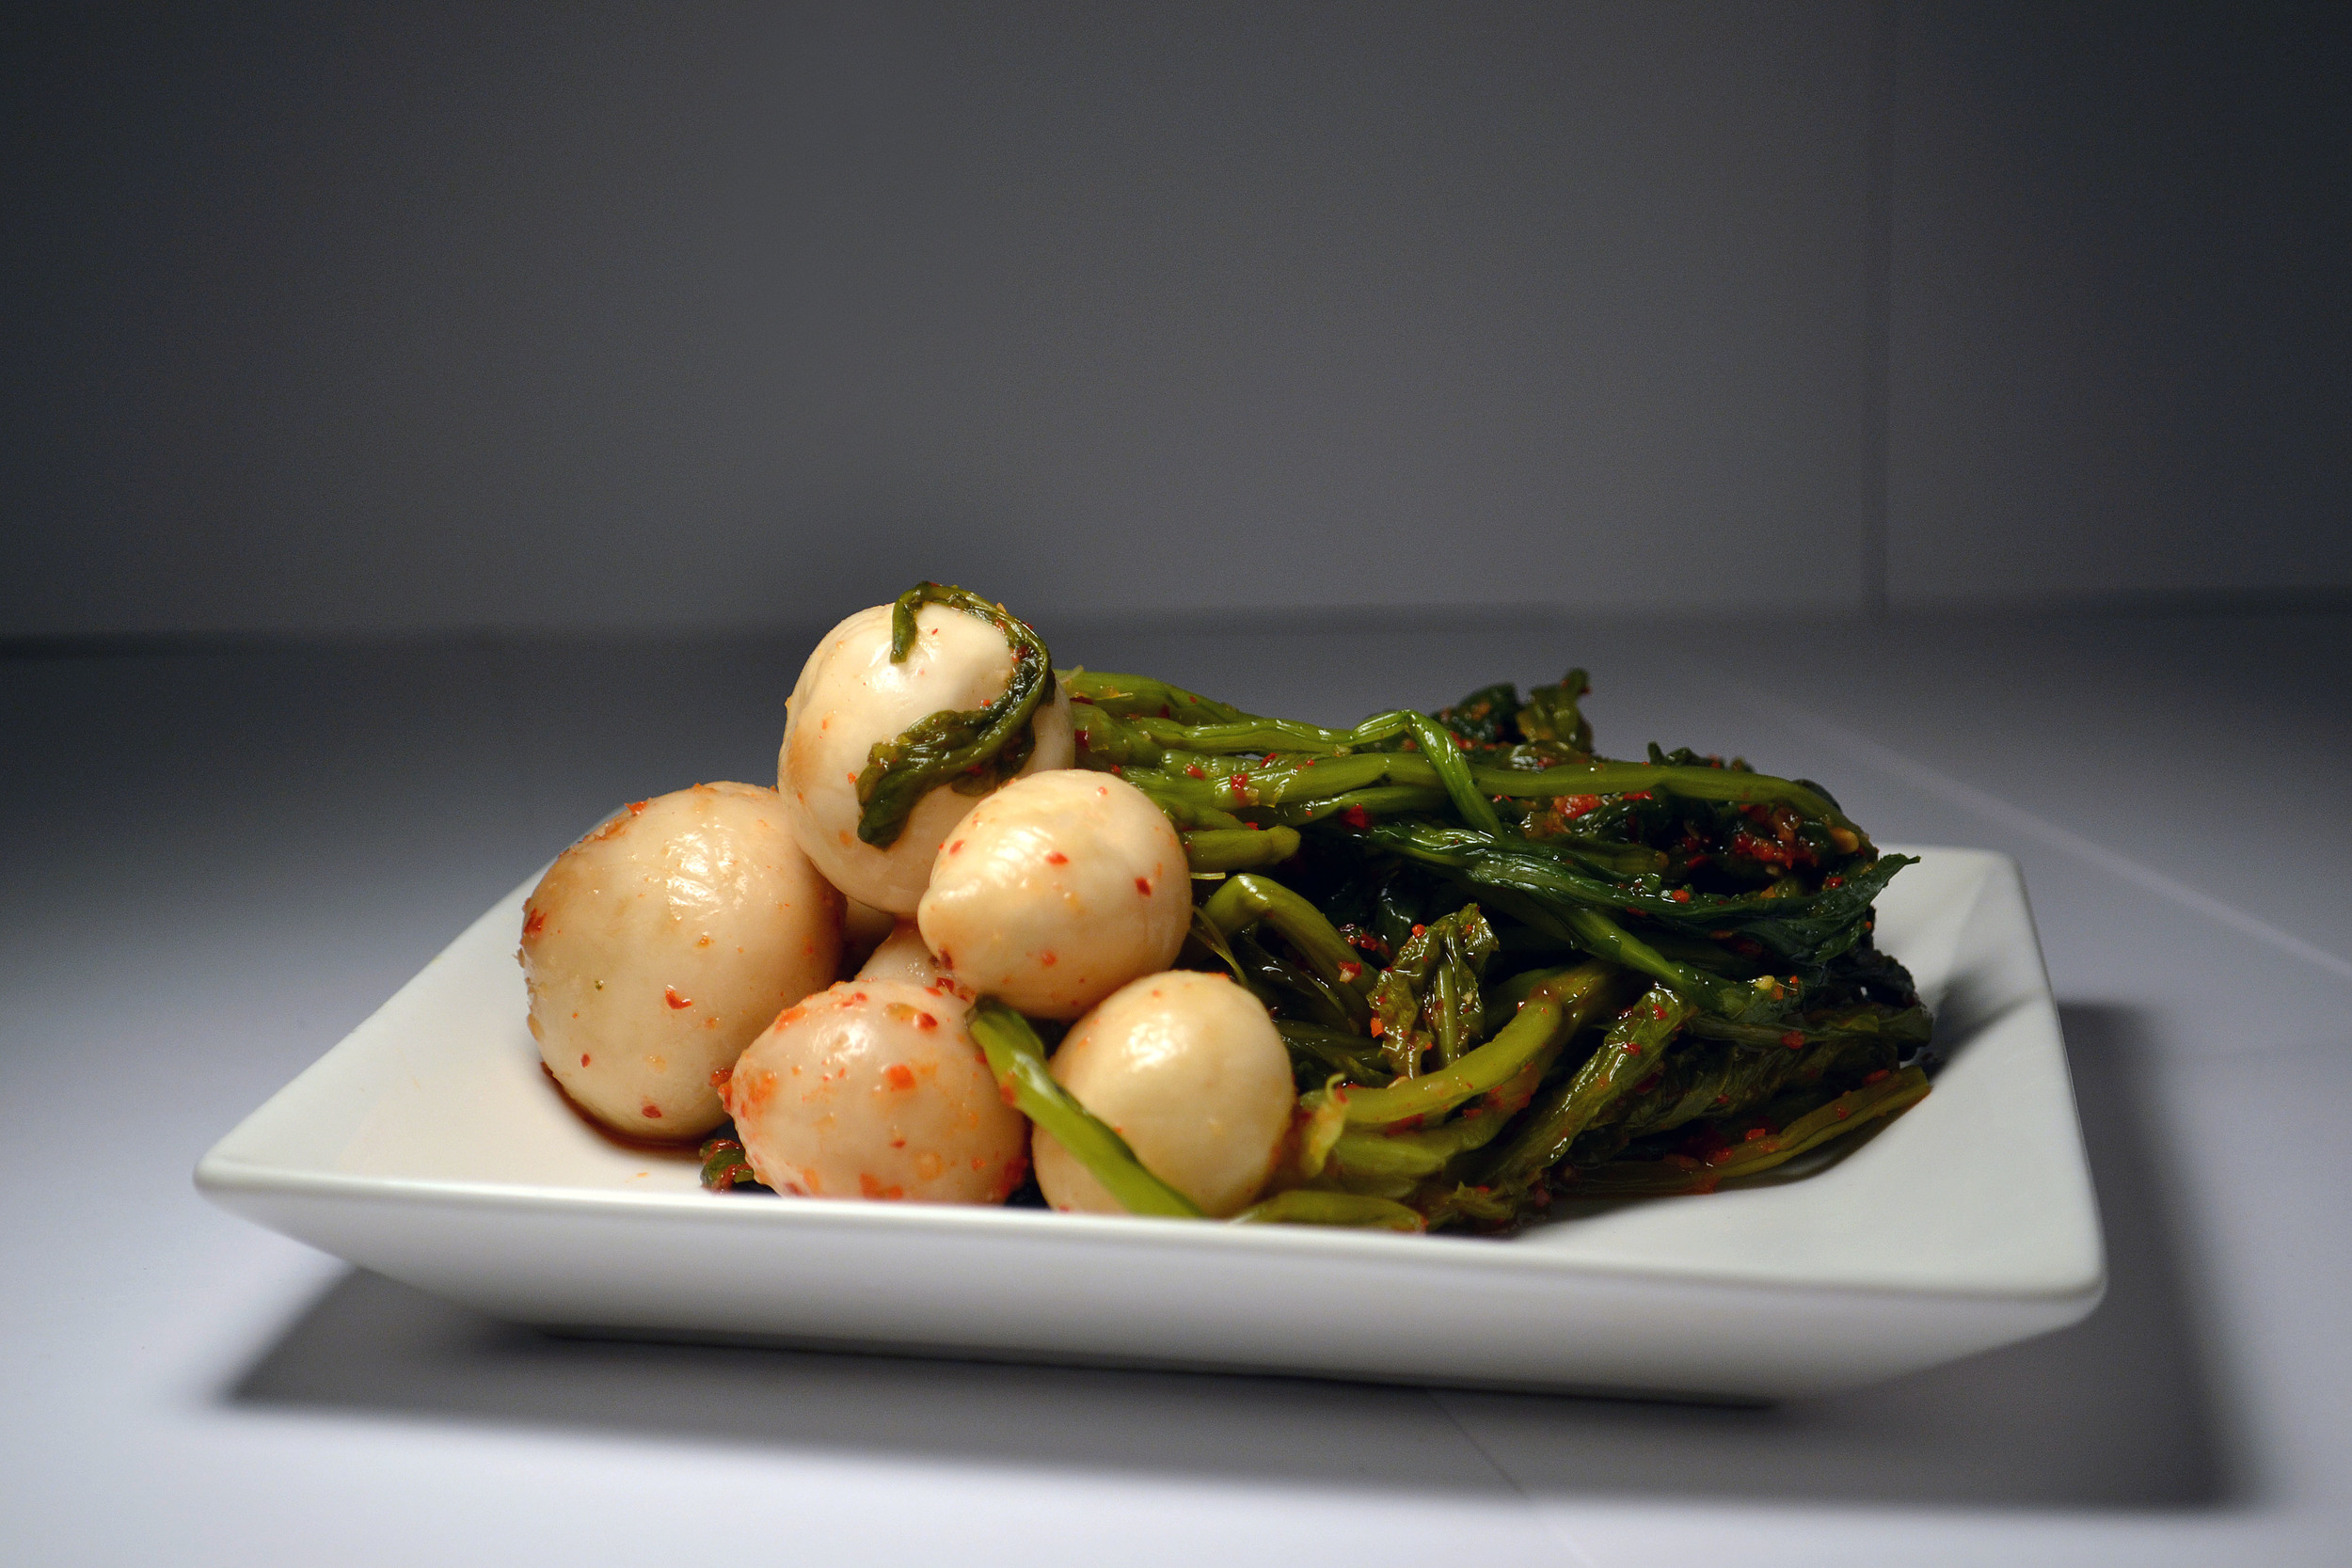 TURNIP KIMCHI:Like the Daikon Kimchi, the turnip is crunchy and tangy in taste. Natural and wholesome, the Turnip Kimchi will give you the nutrients and flavor desired.